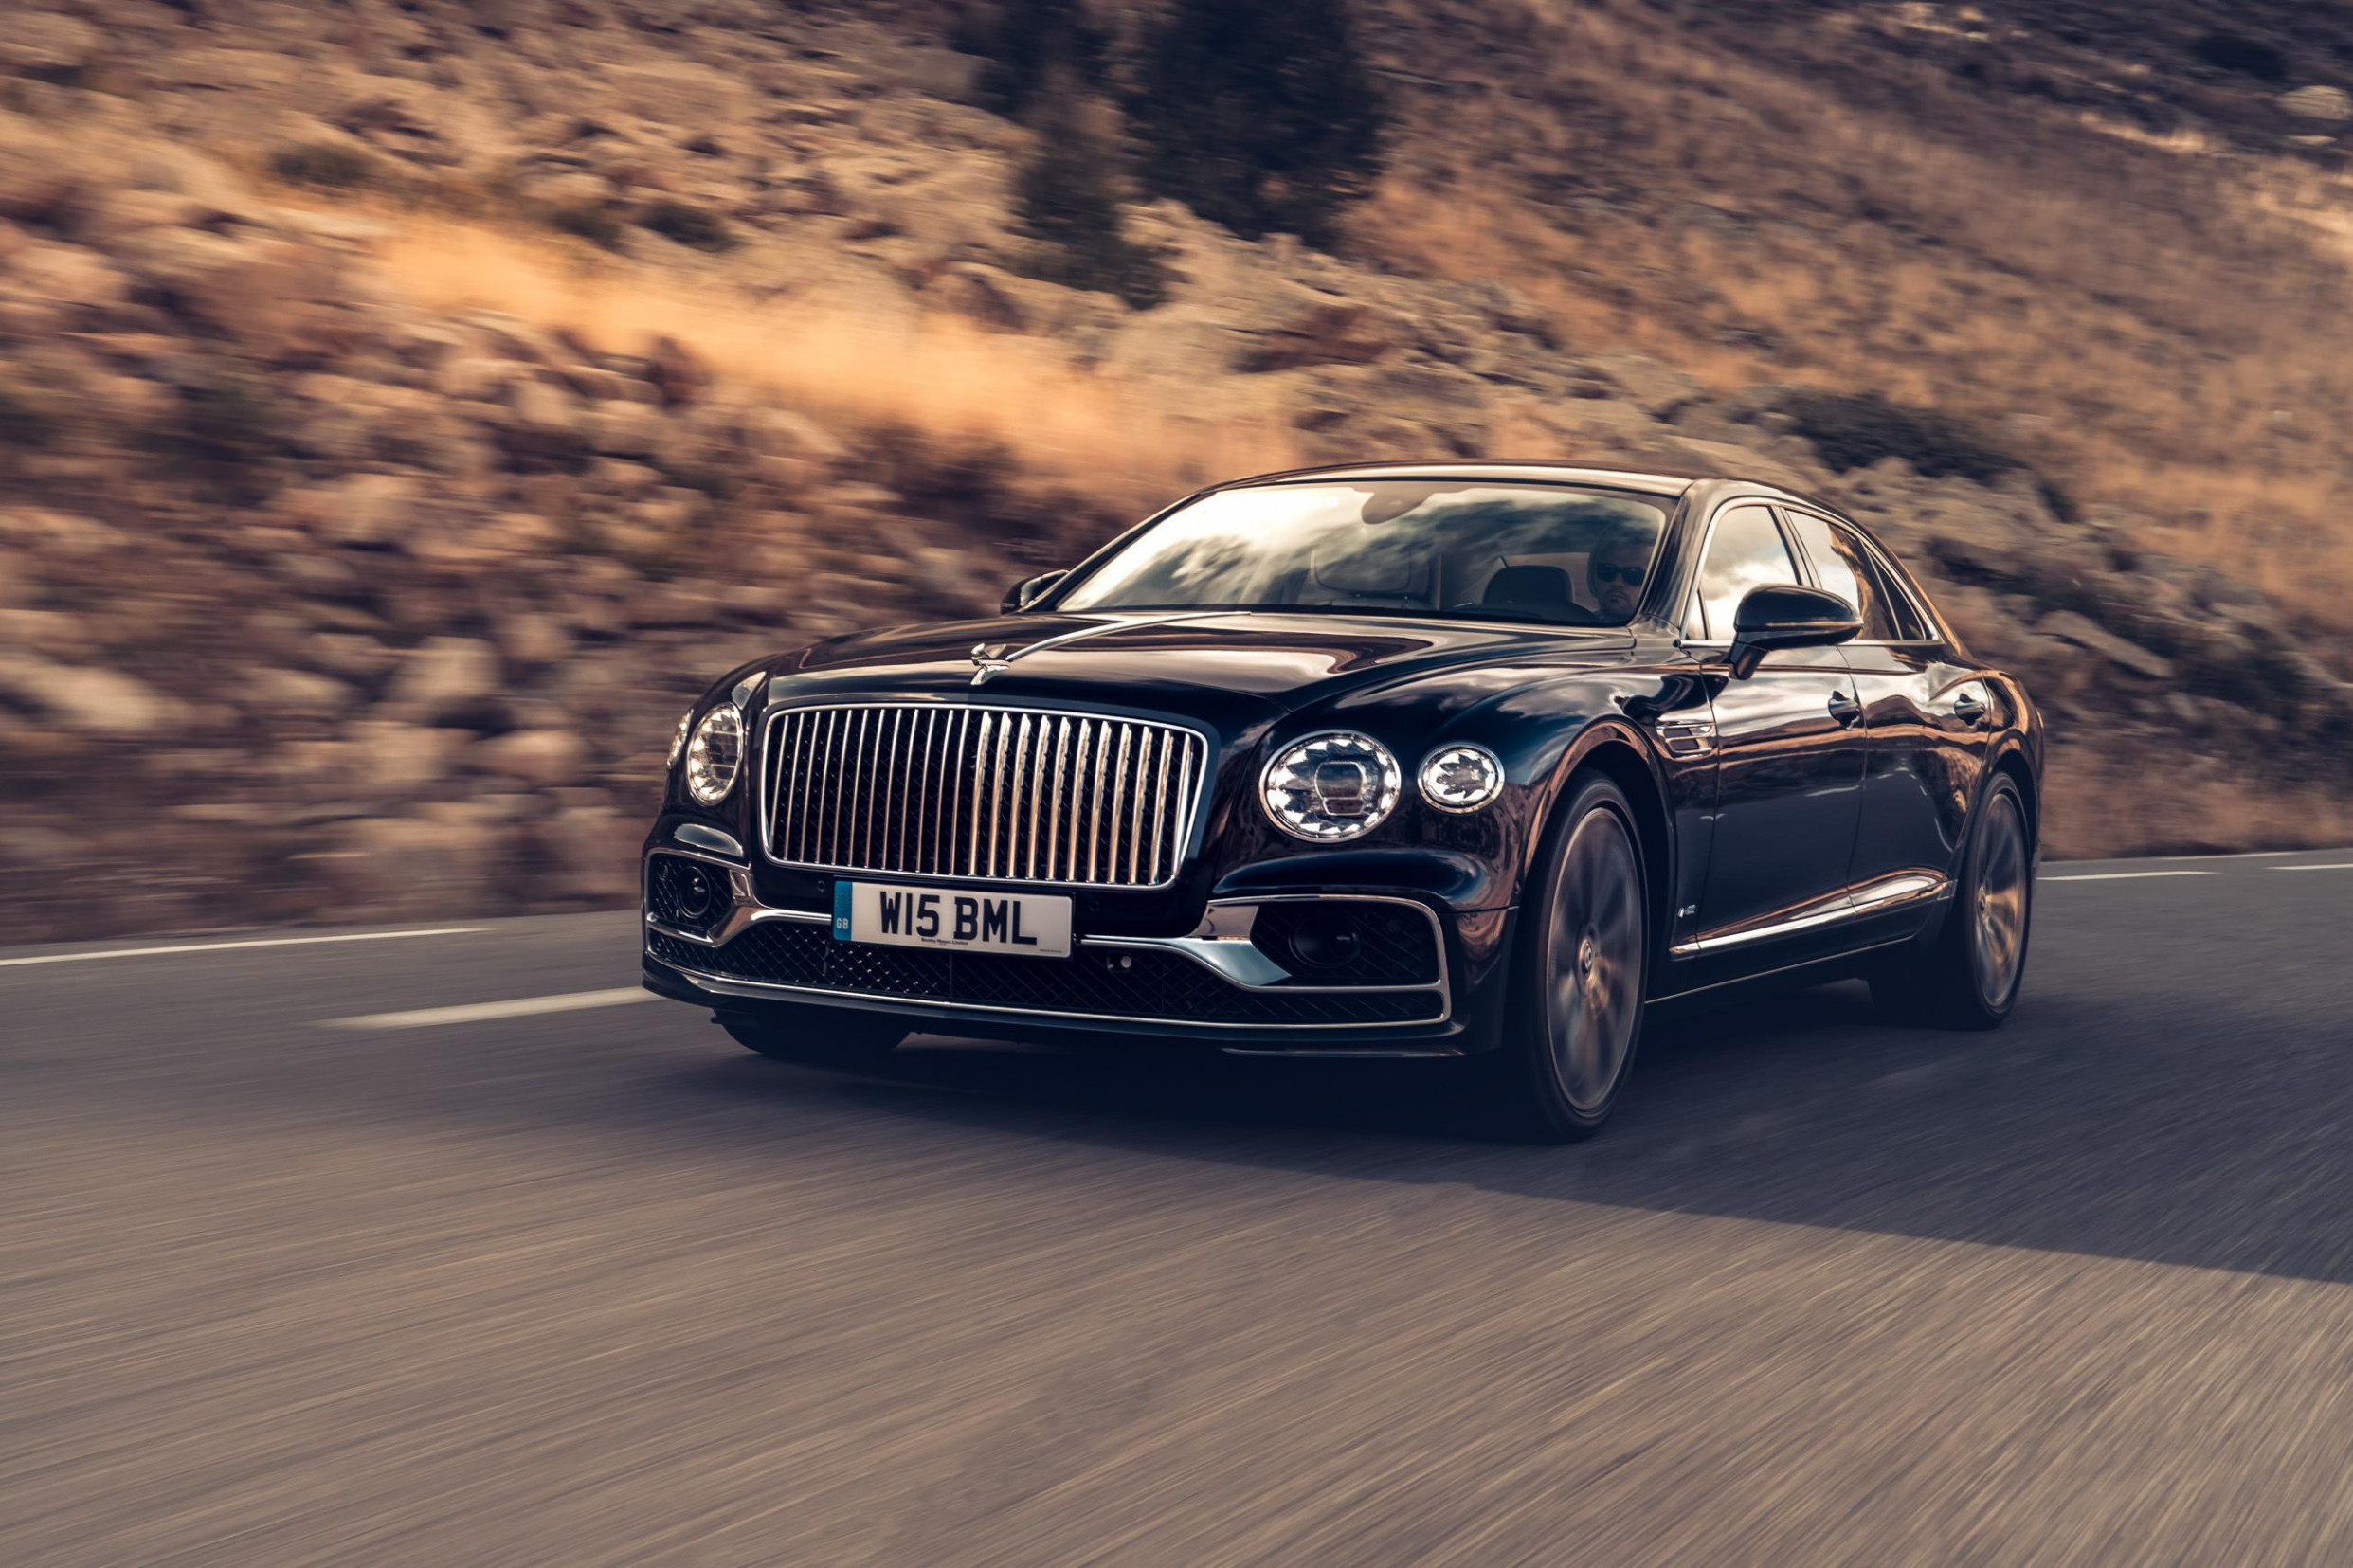 New Model and Performance 2022 Bentley Flying Spur